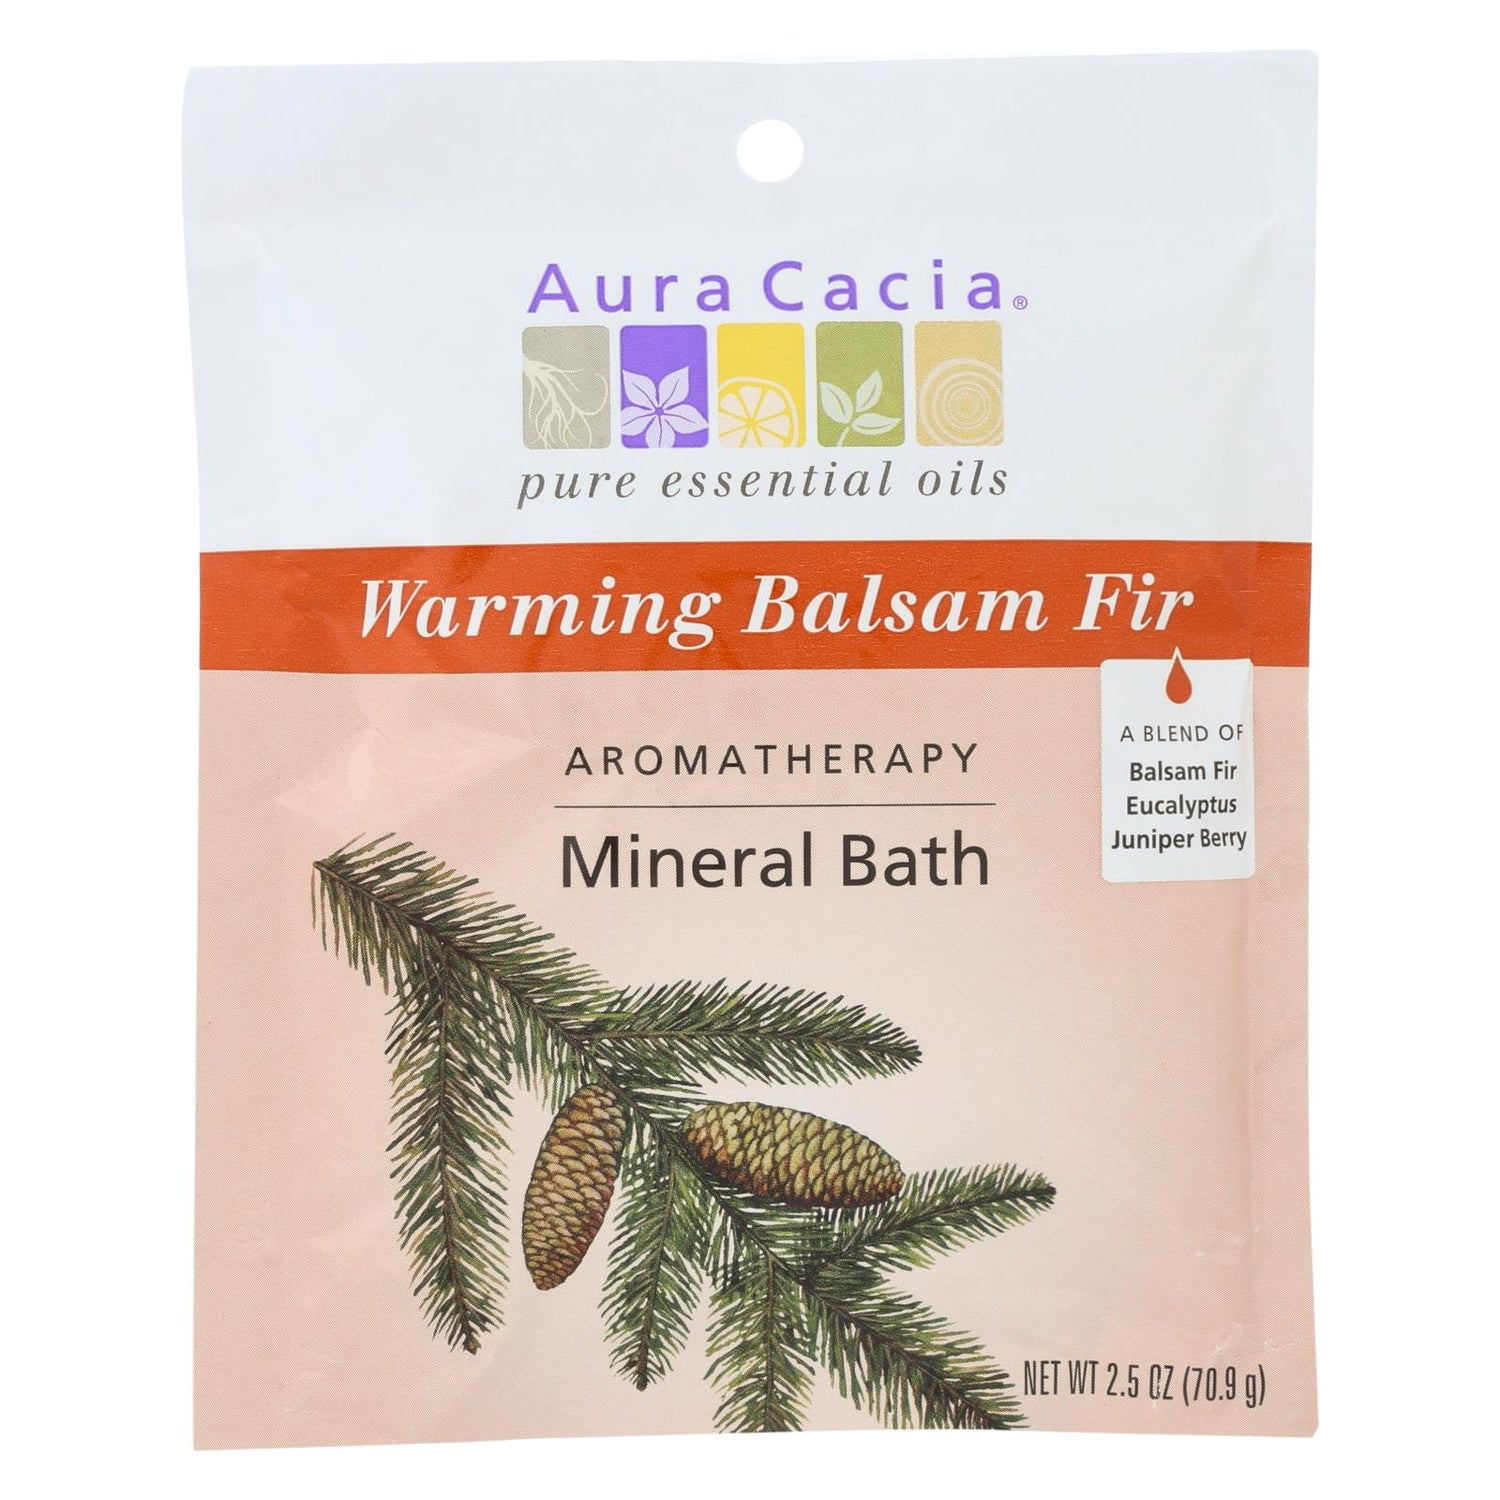 Aura Cacia Aromatherapy Mineral Bath Soothing Heat - 2.5 Oz - Case Of 6